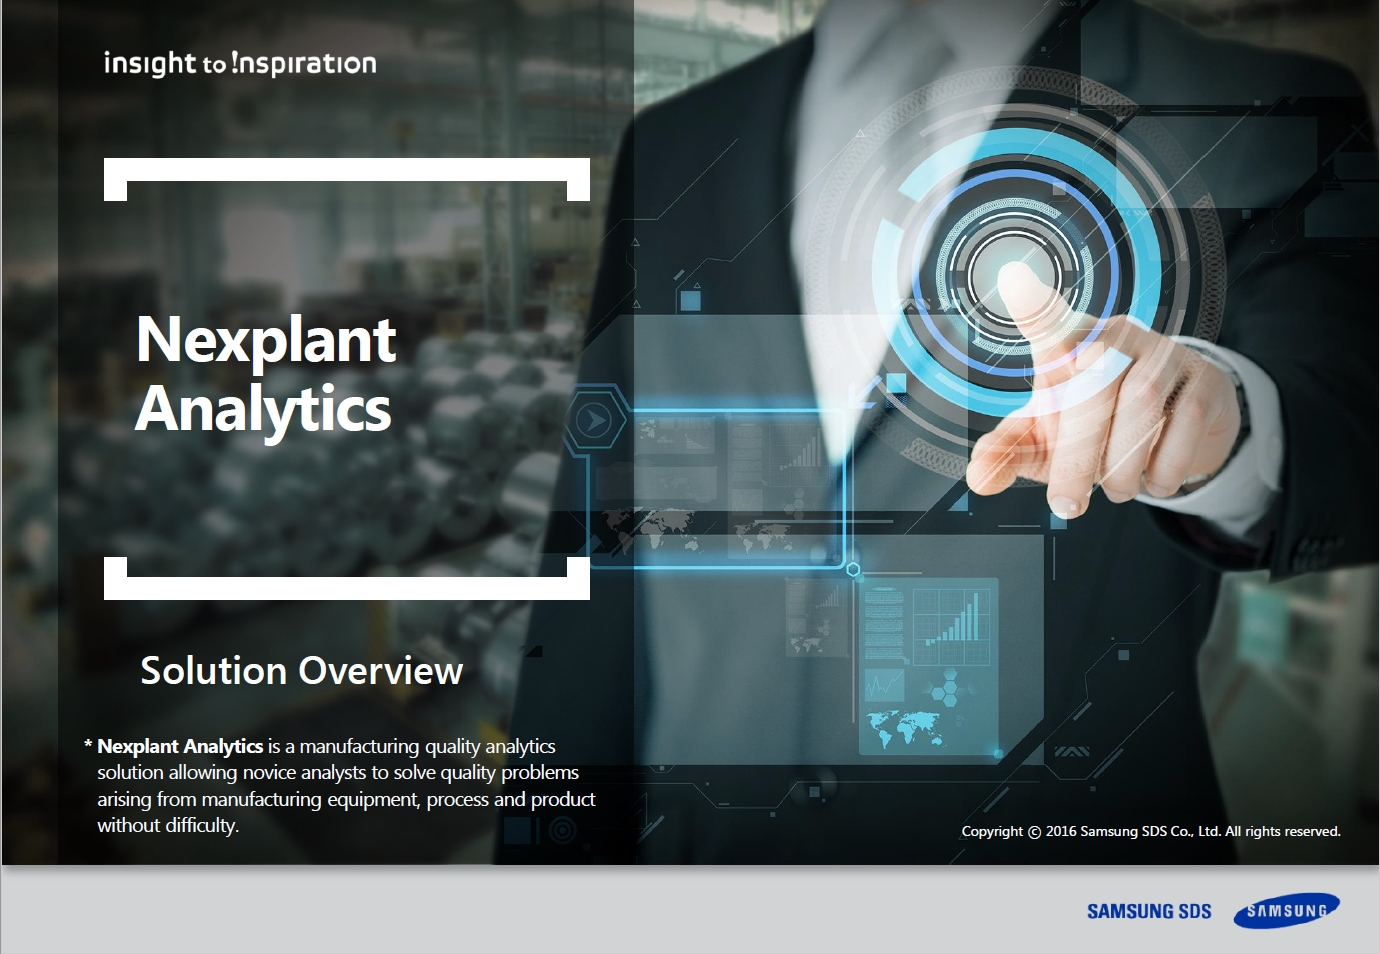 Enhance manufacturing with unmanned big data analytics